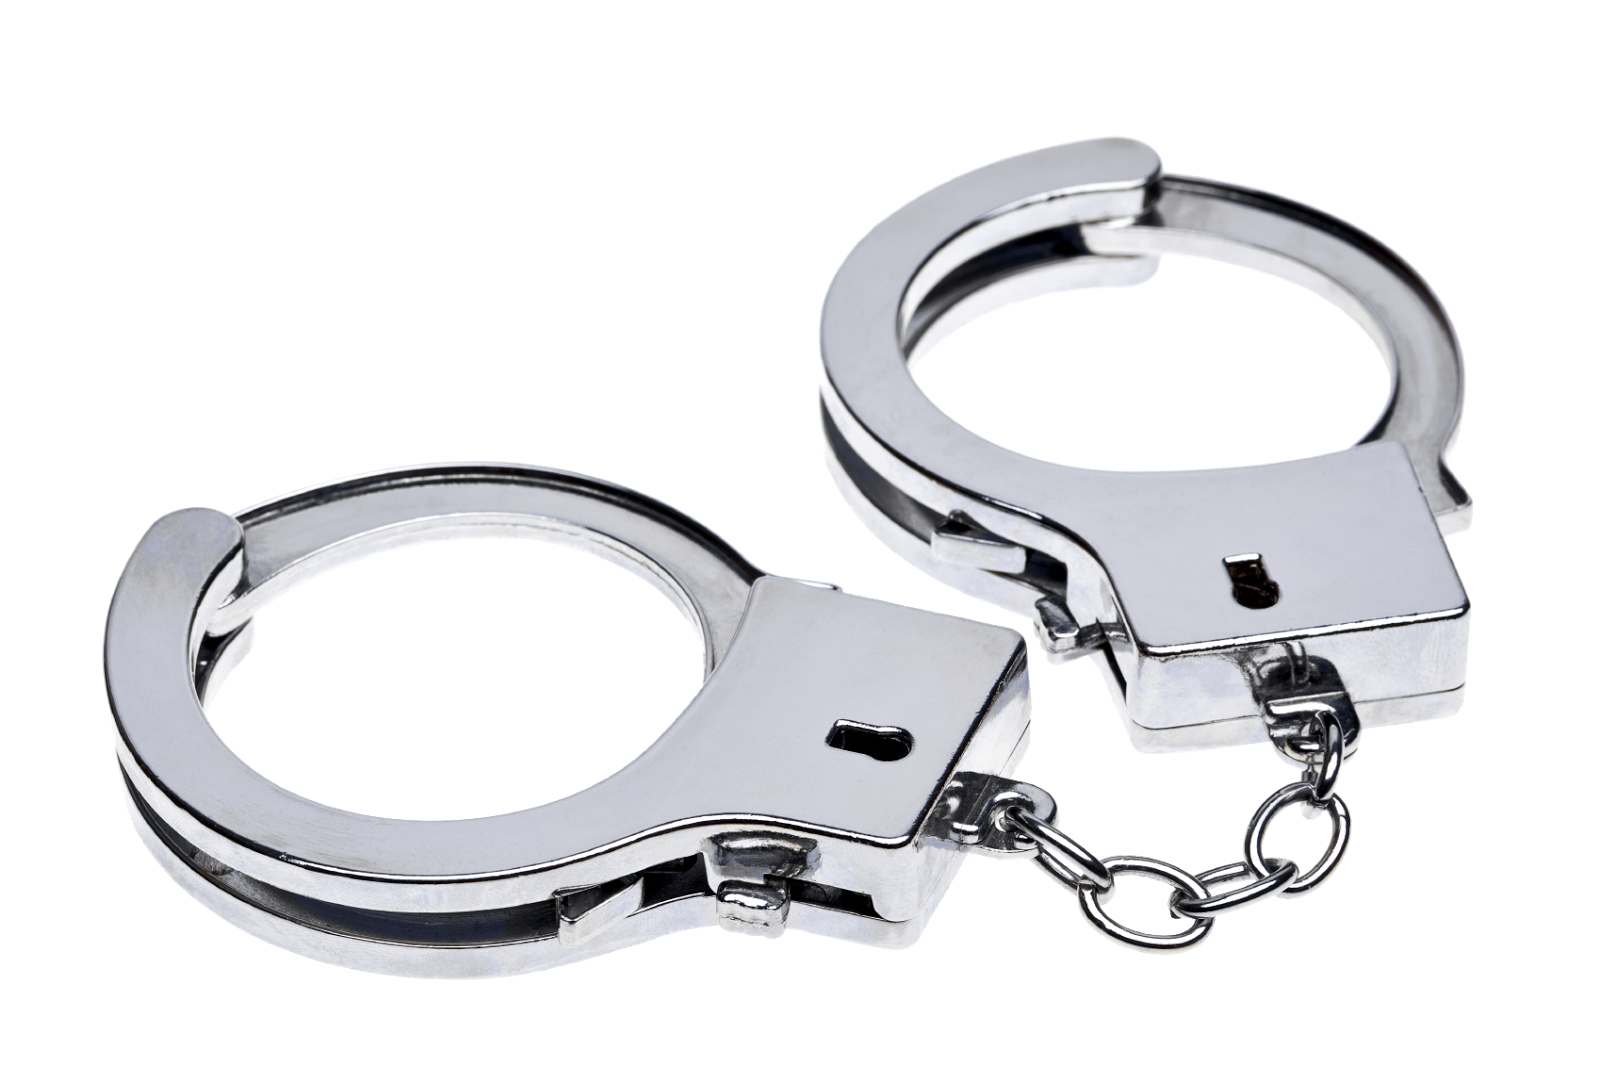 Handcuffs png pictures free. Handcuff clipart transparent background